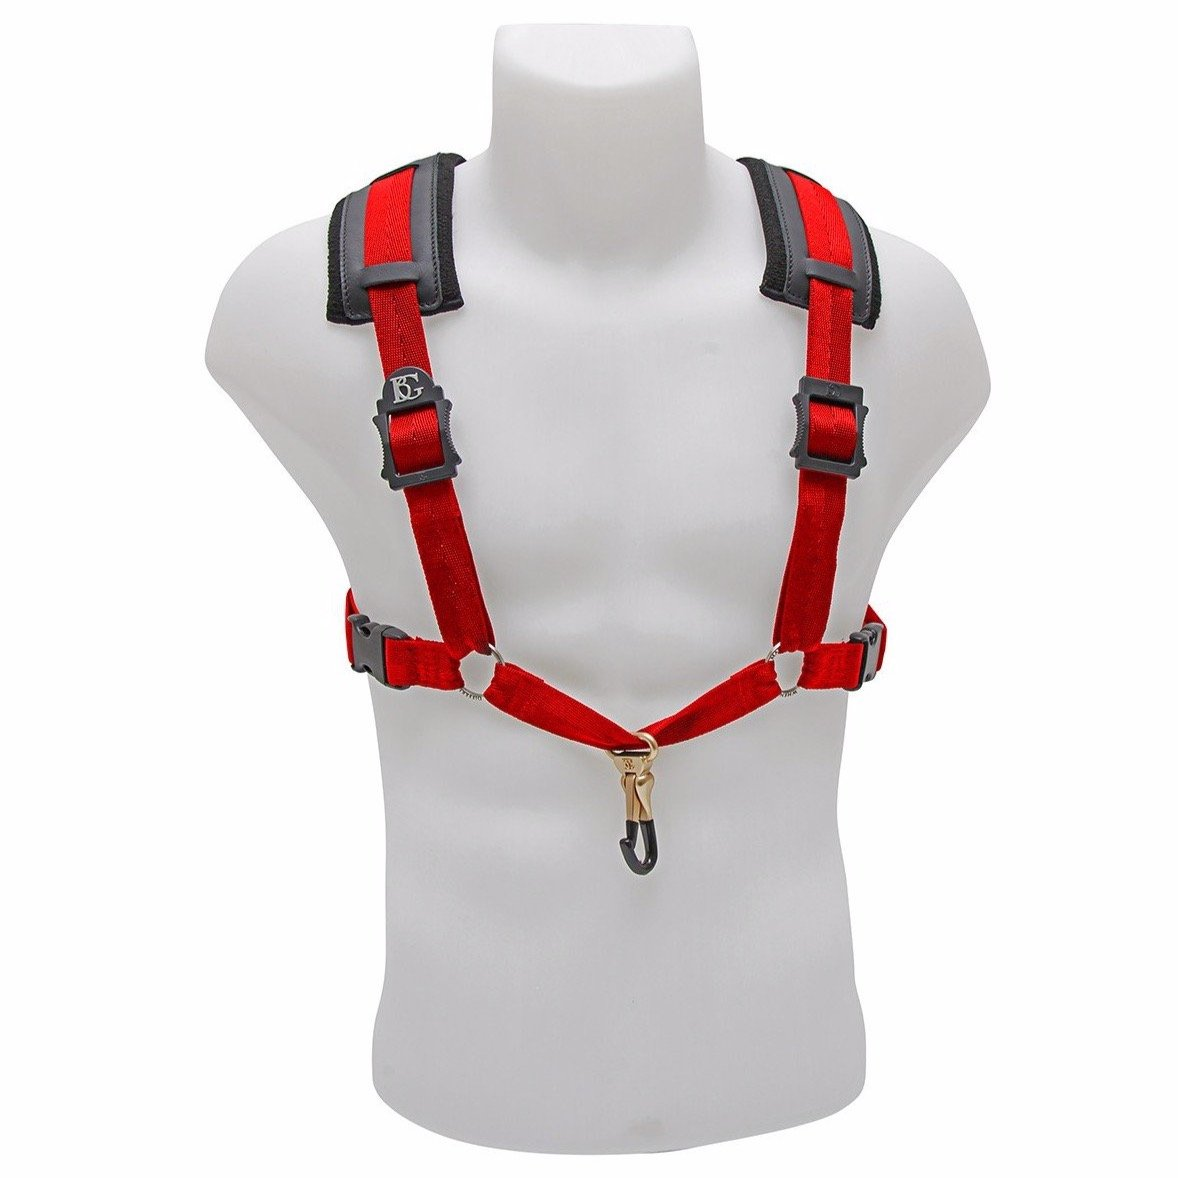 BG France - Comfort Harnesses for Saxophone (Alto/Tenor/Baritone)-Accessories-BG France-Red-Music Elements